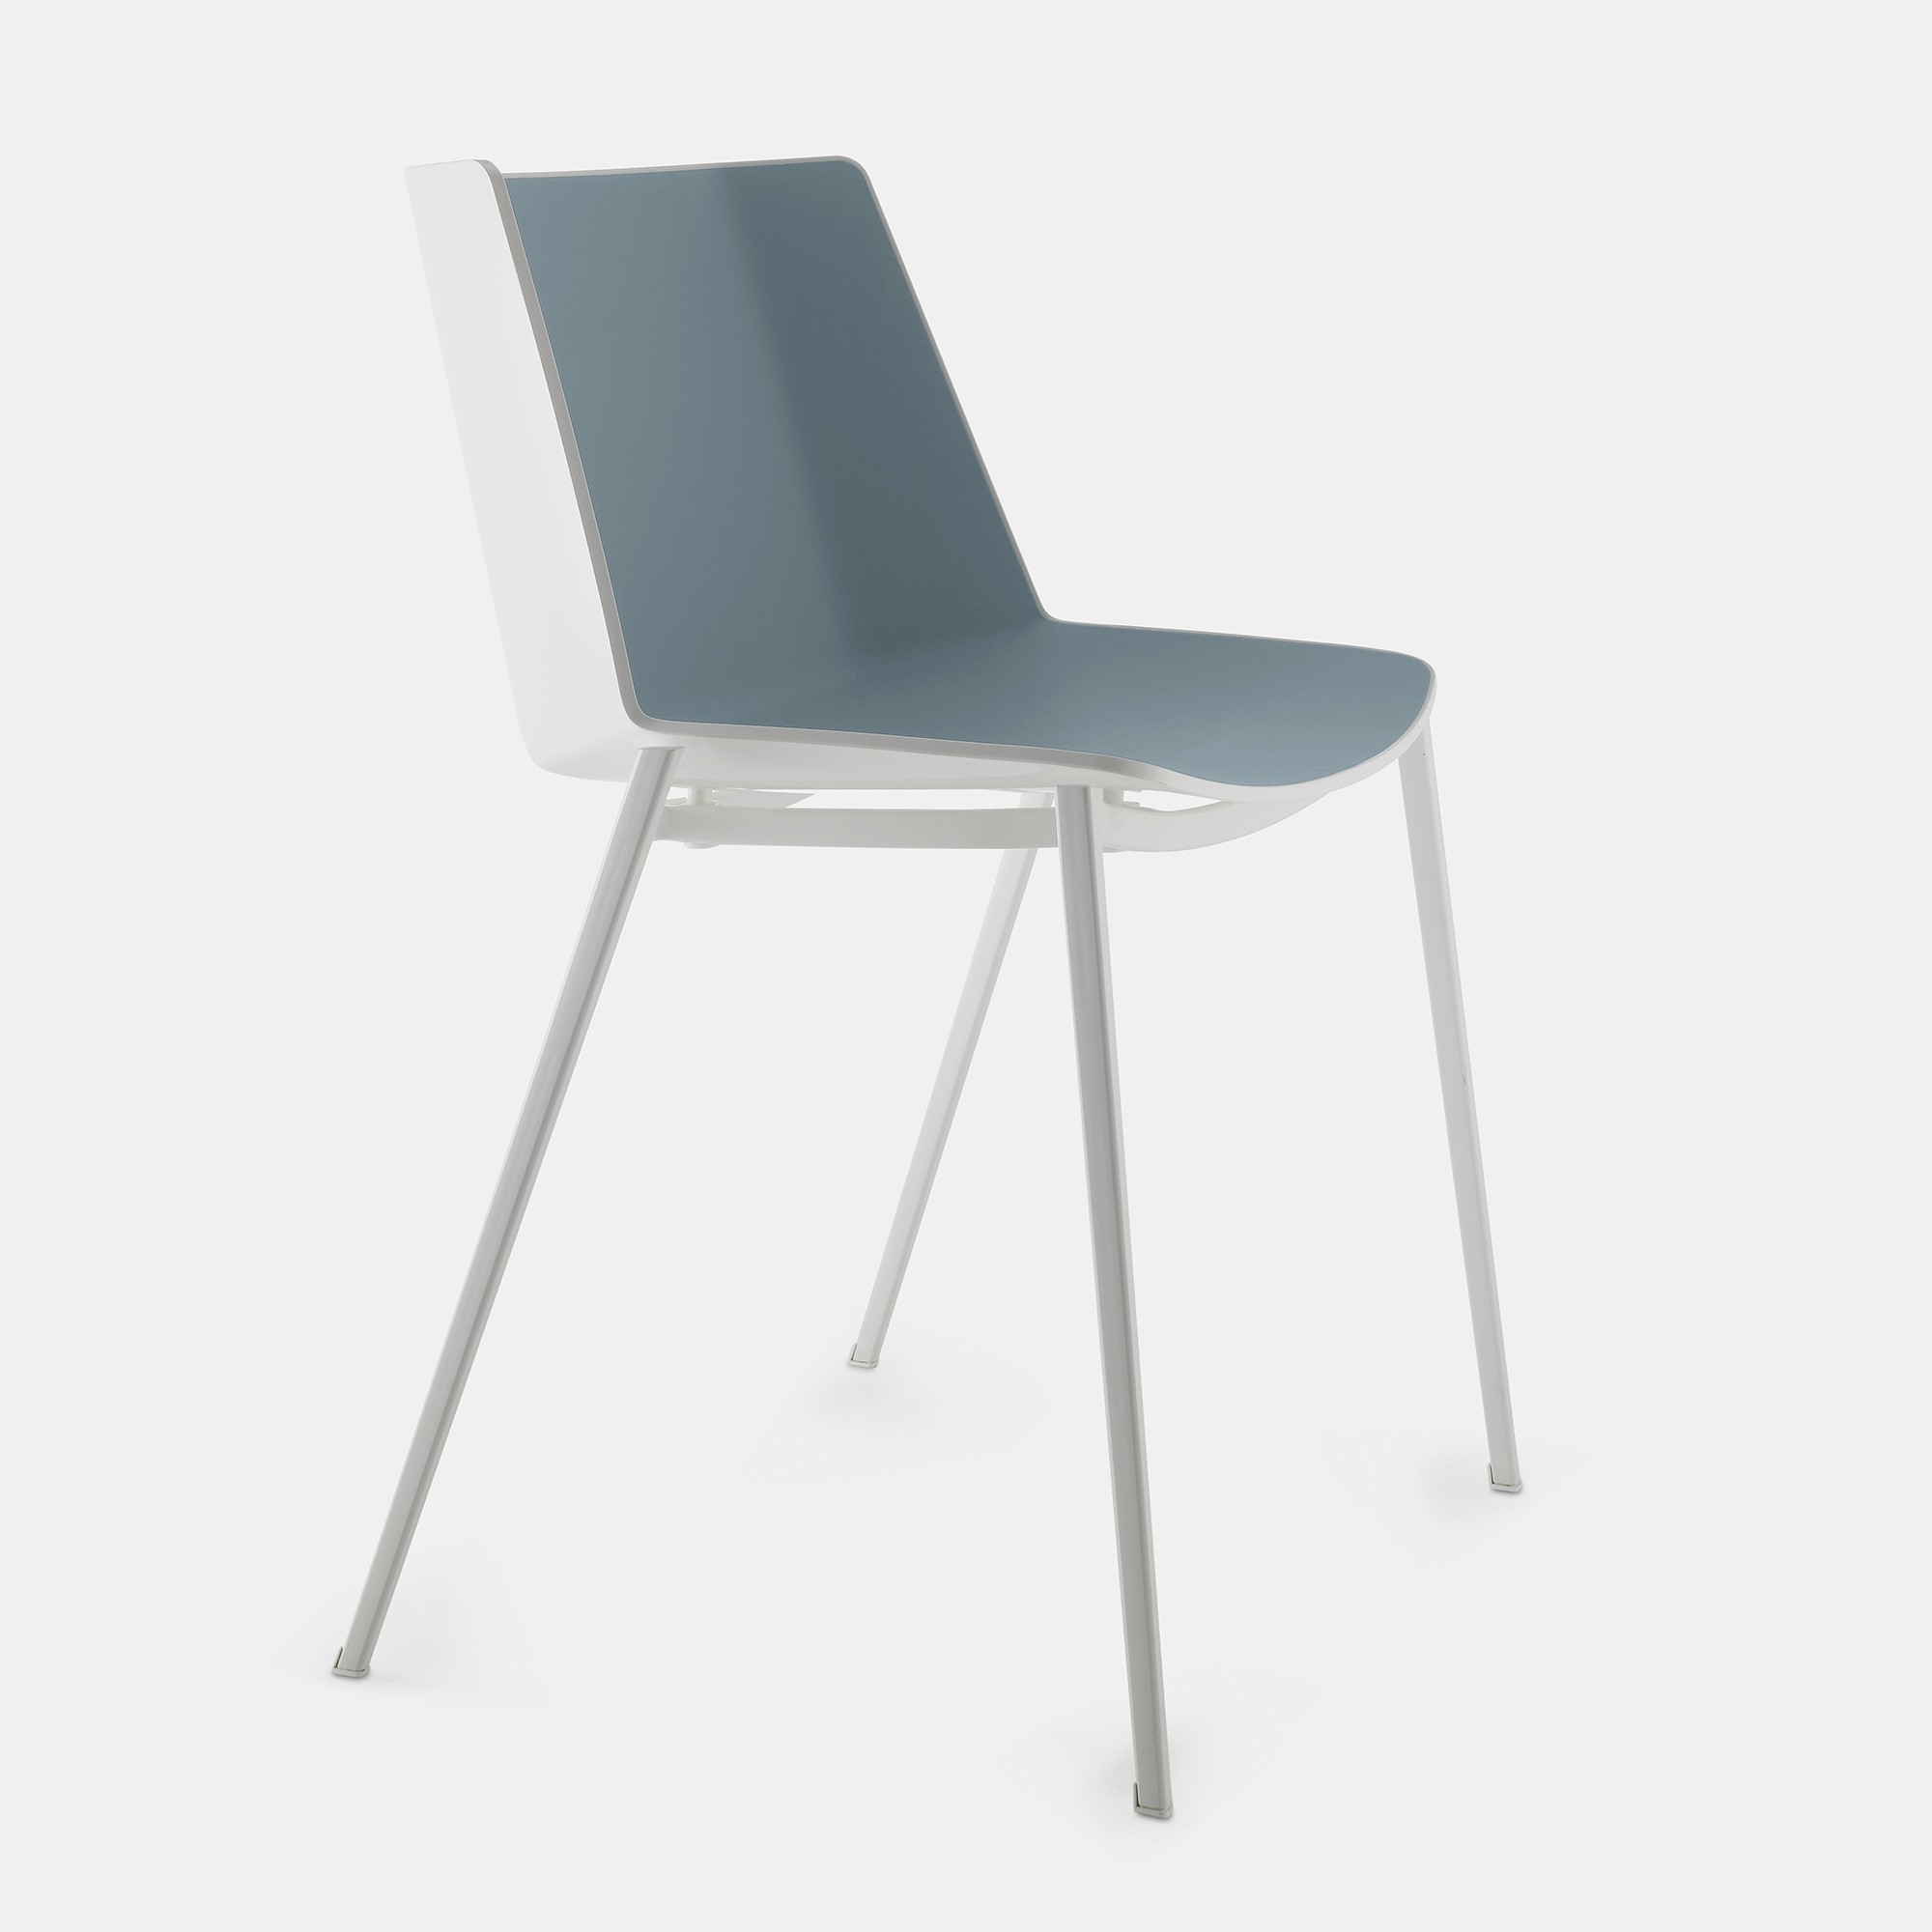 Chairs For Office, Home And Contract Spaces. MDF Italia.